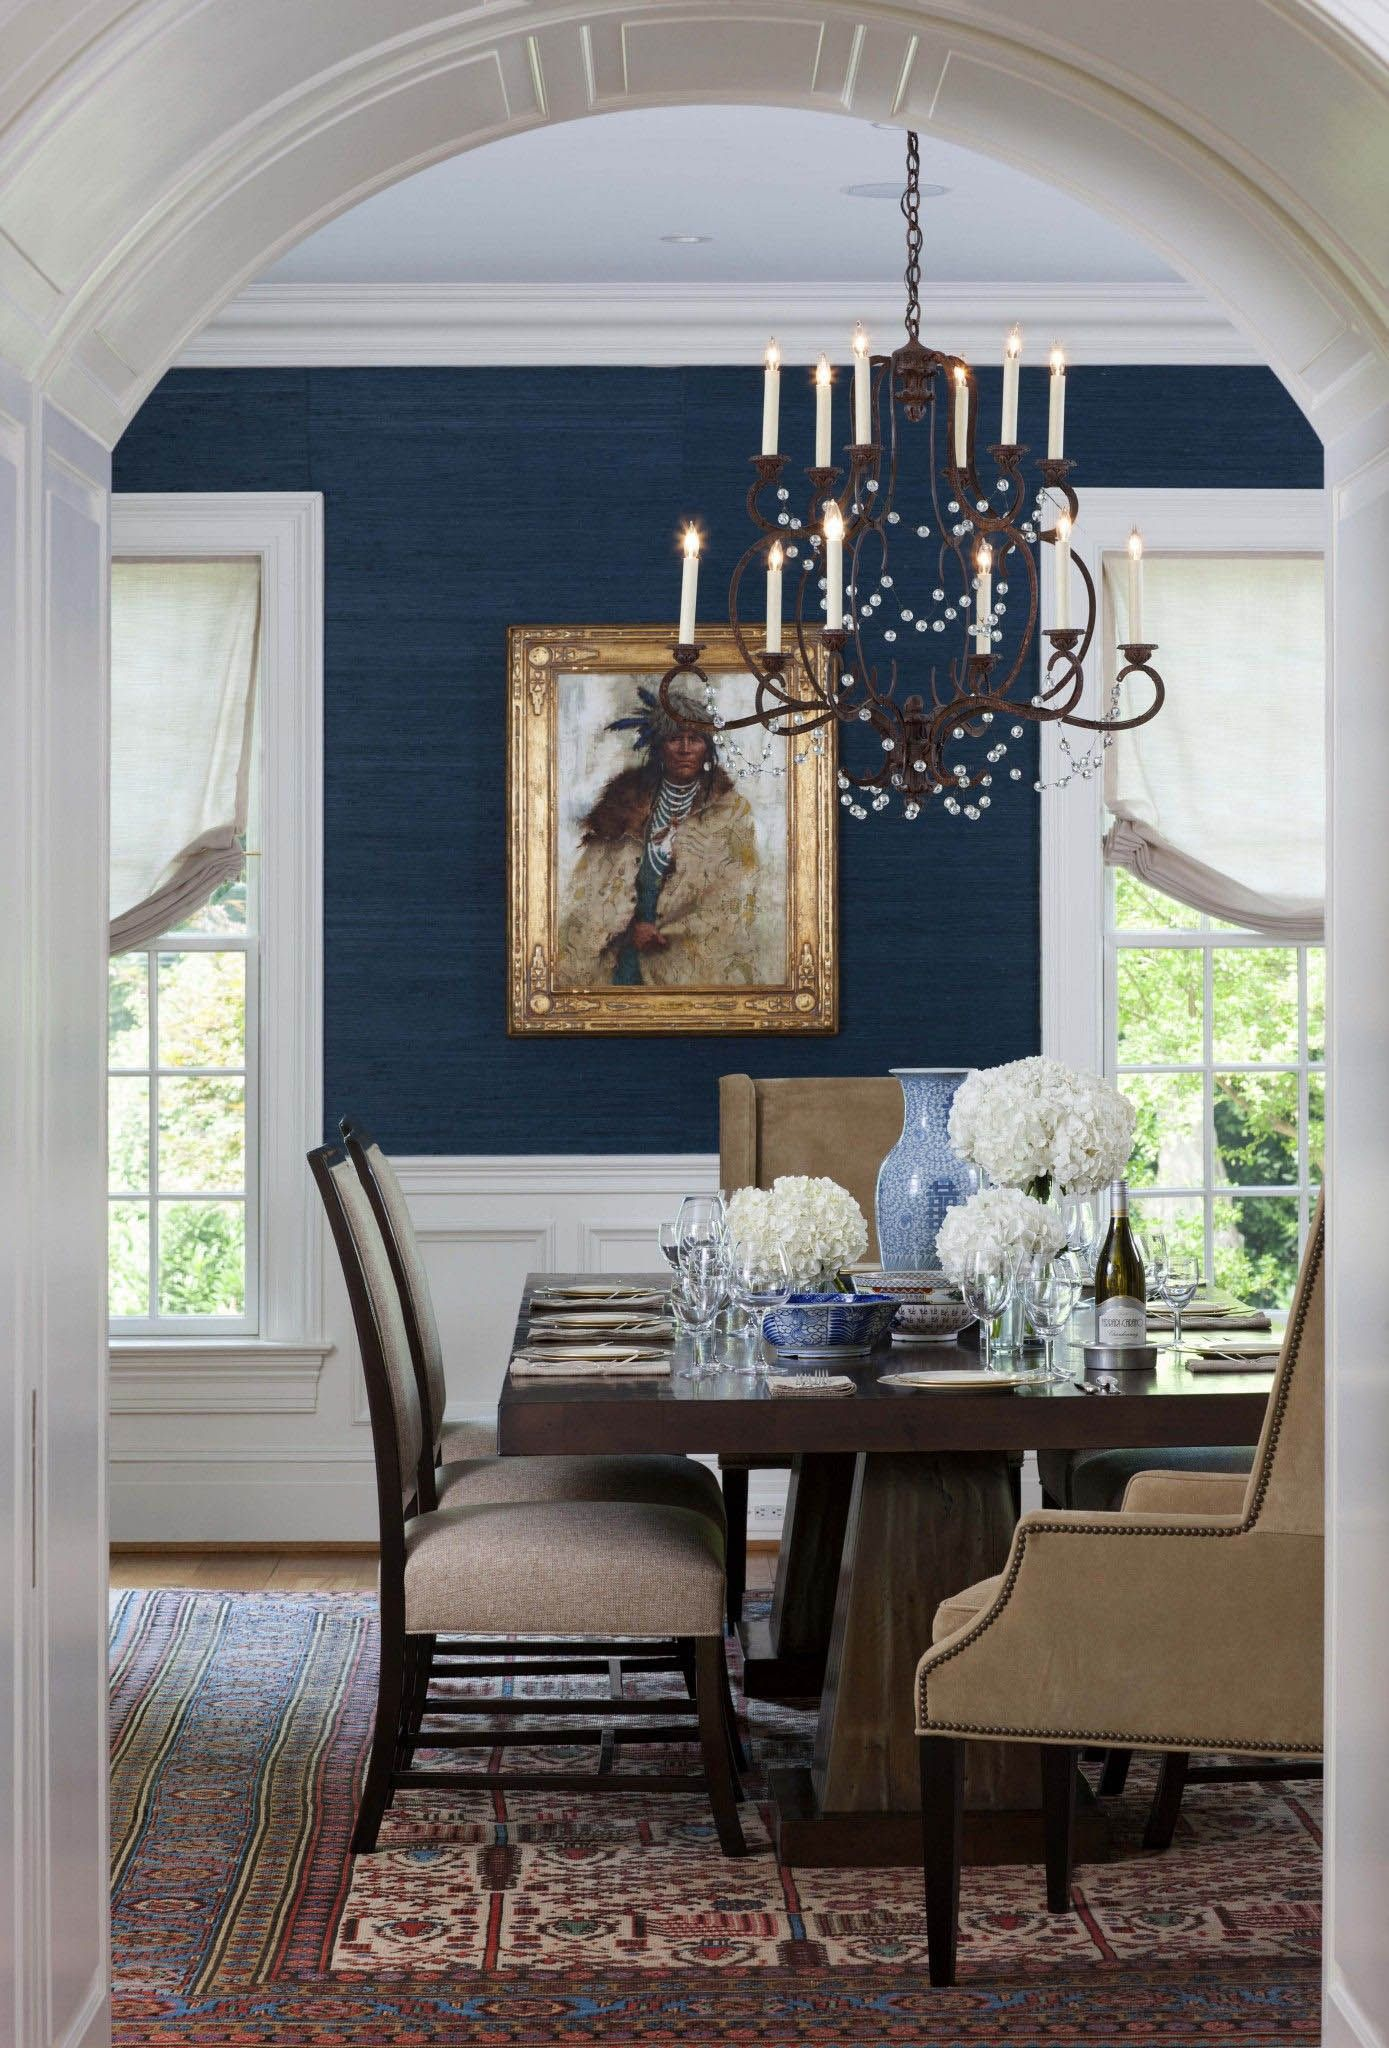 Dining-room Rugs Can Be Practical If You Follow These Rules images